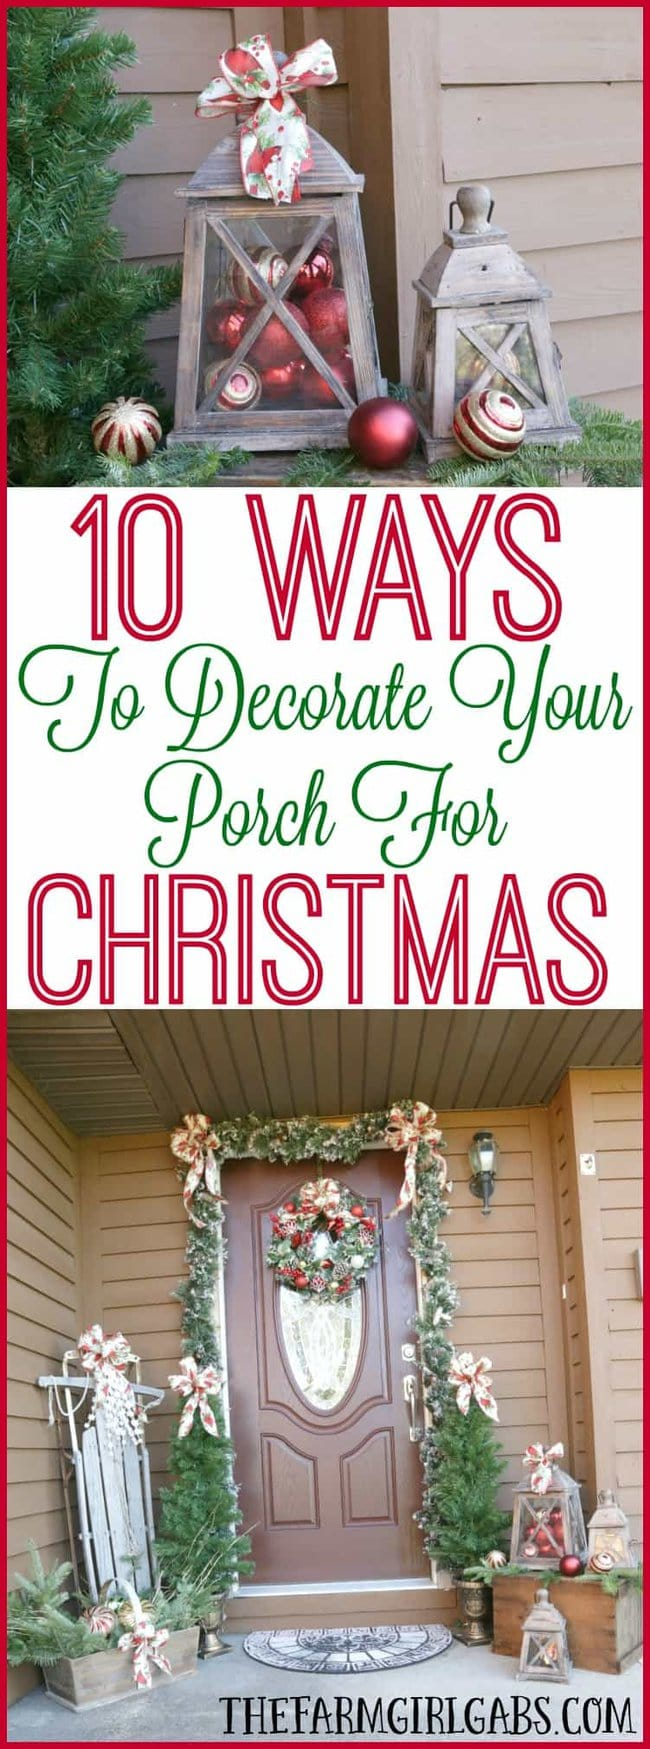 It's time to deck the halls for Christmas! Here are 10 Ways To Decorate Your Porch For Christmas.